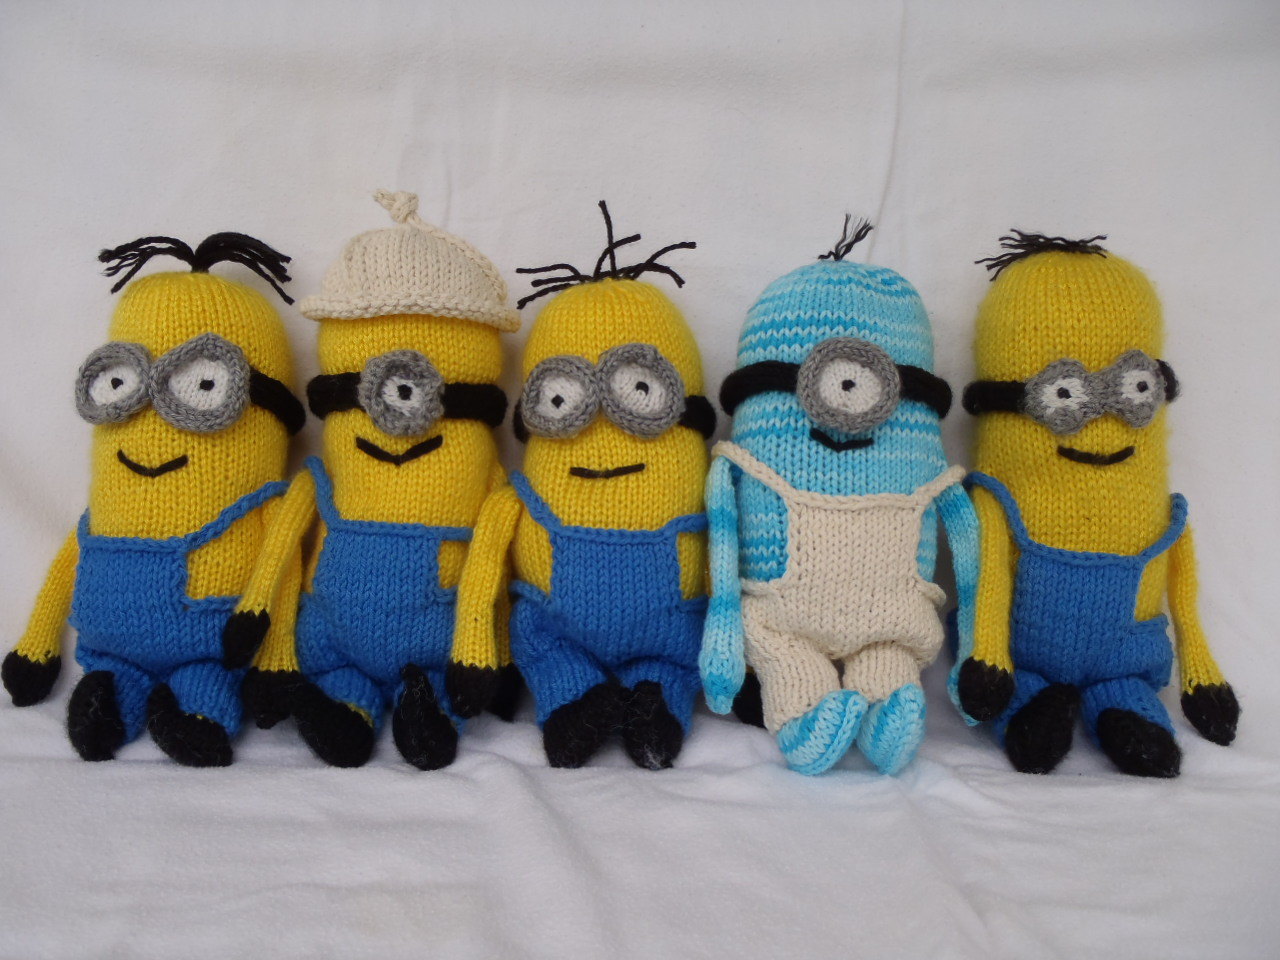 Stana\'s Critters Etc.: Knitting Pattern for Minions - Part 2